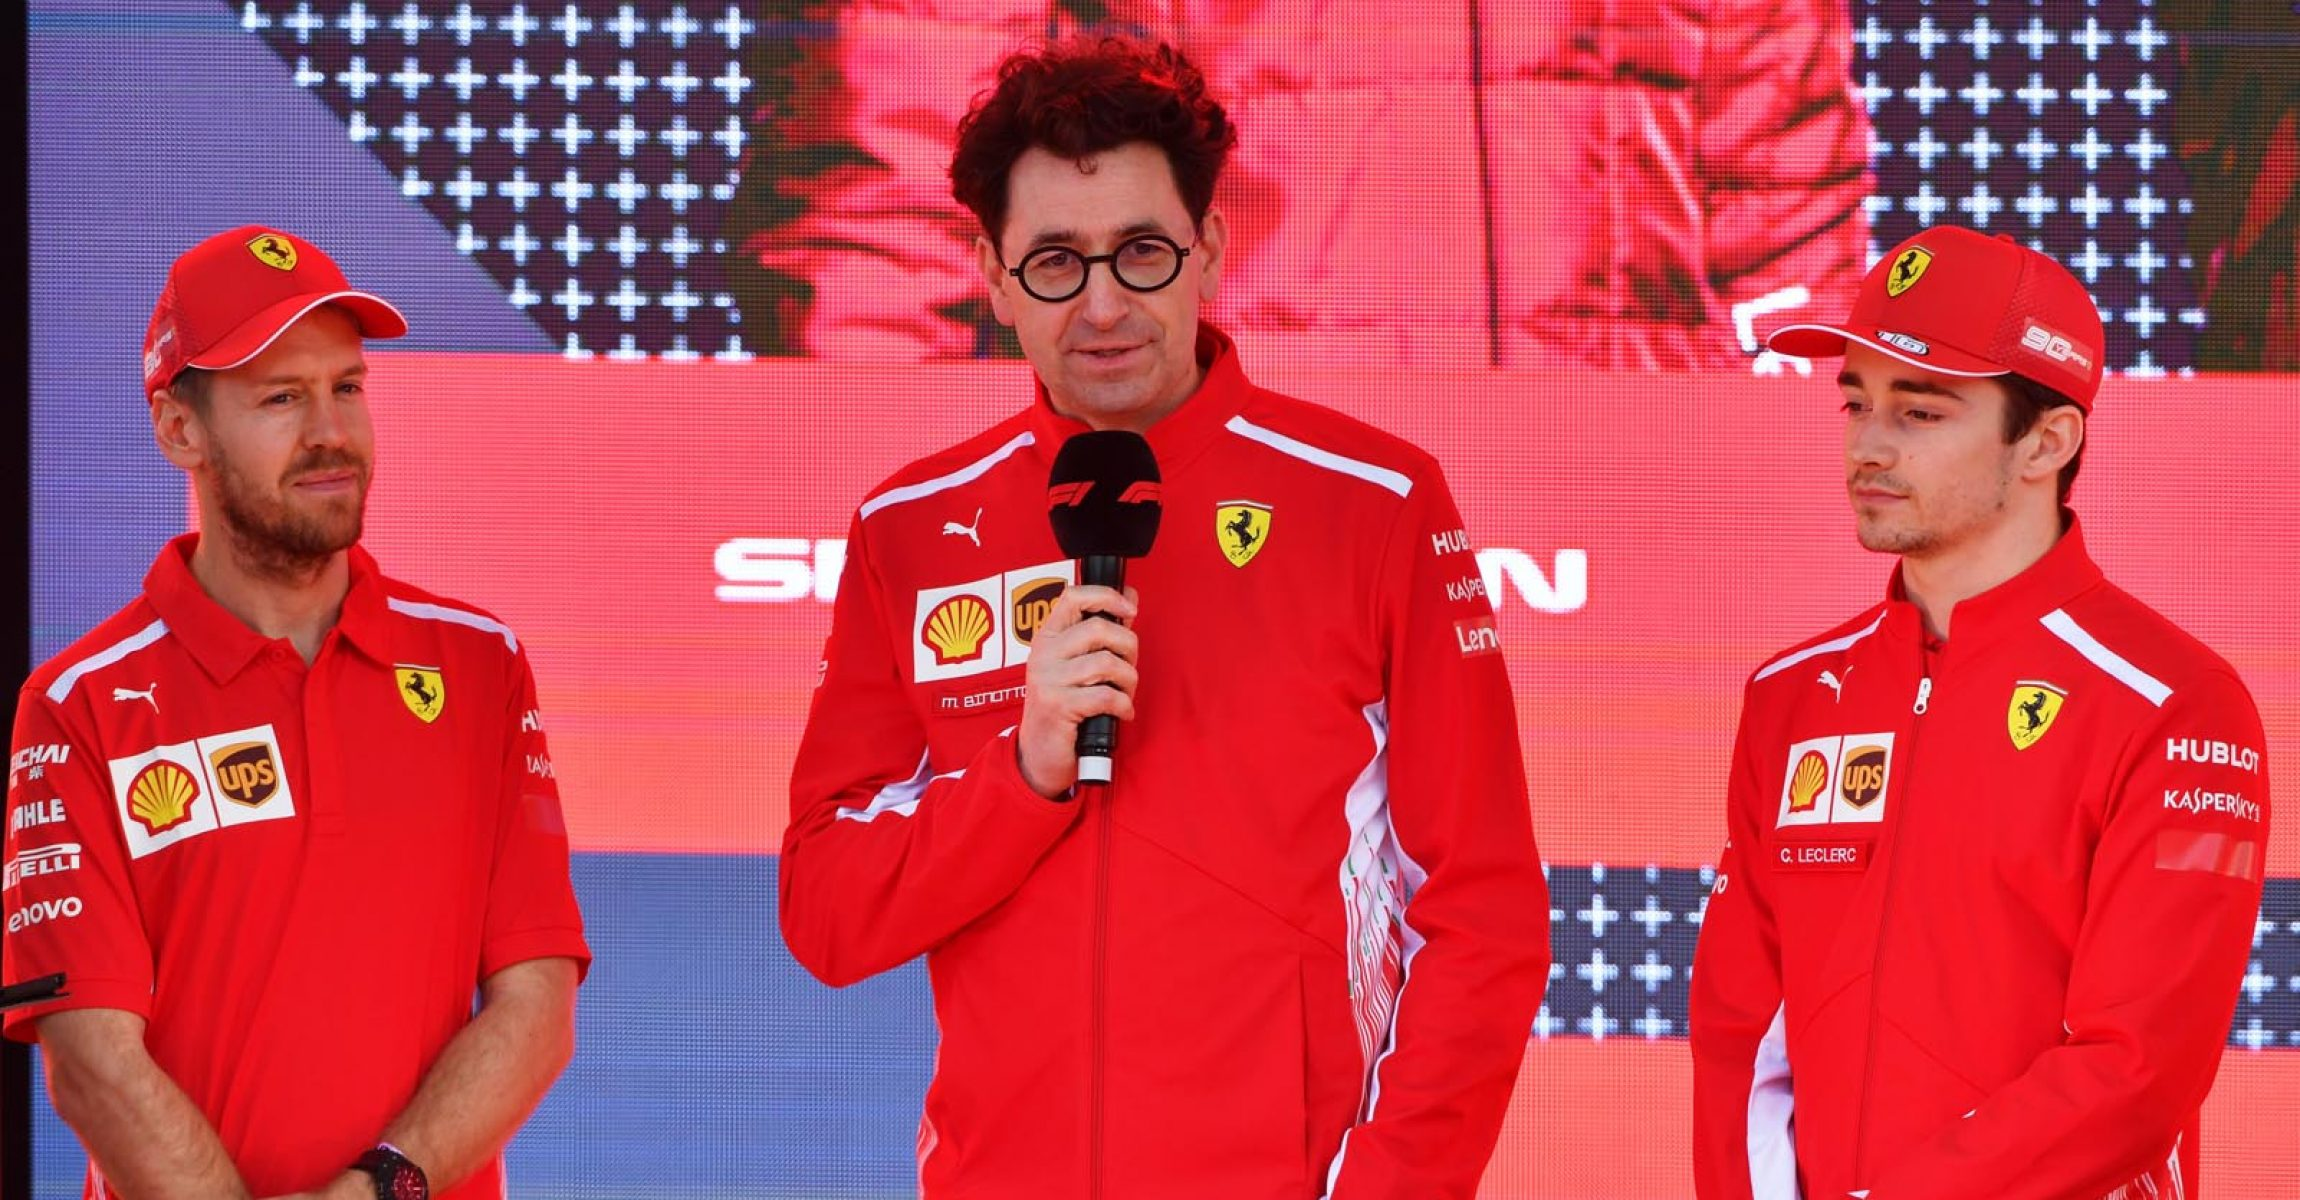 MELBOURNE GRAND PRIX CIRCUIT, AUSTRALIA - MARCH 13: Sebastian Vettel, Ferrari, Mattia Binotto, Team Principal Ferrari, and Charles Leclerc, Ferrari, at the Federation Square event during the Australian GP at Melbourne Grand Prix Circuit on March 13, 2019 in Melbourne Grand Prix Circuit, Australia. (Photo by Mark Sutton / Sutton Images)